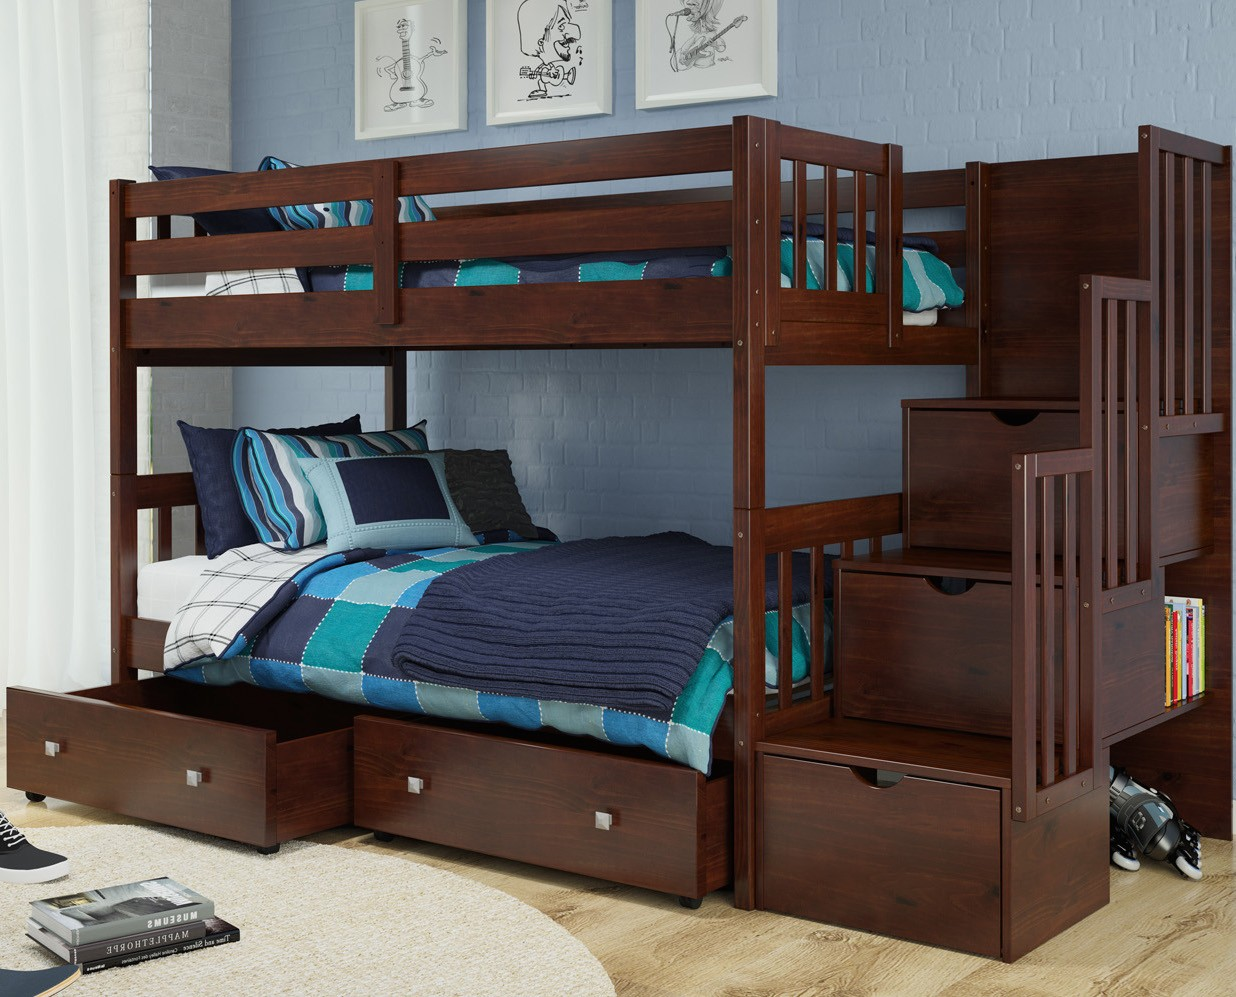 1019-TTCP Stairway Bunk Bed & 505-CP Cappaccino